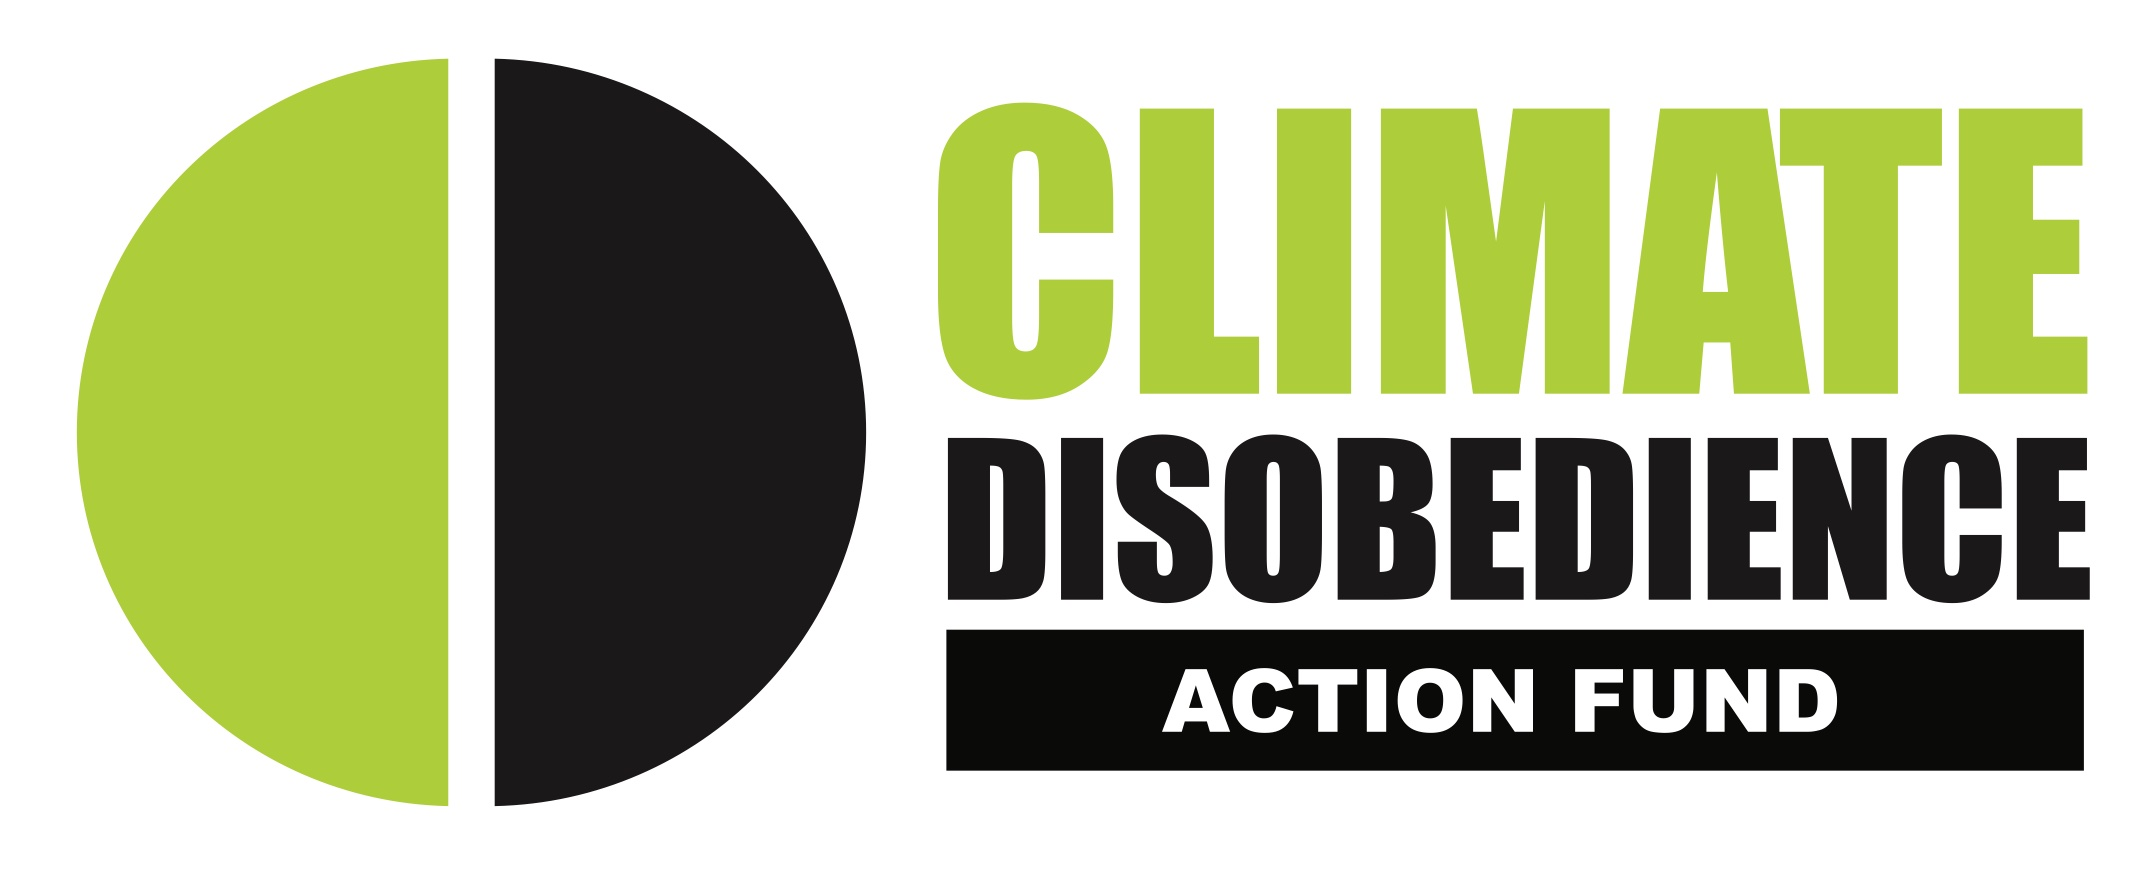 climate disobedience action fund